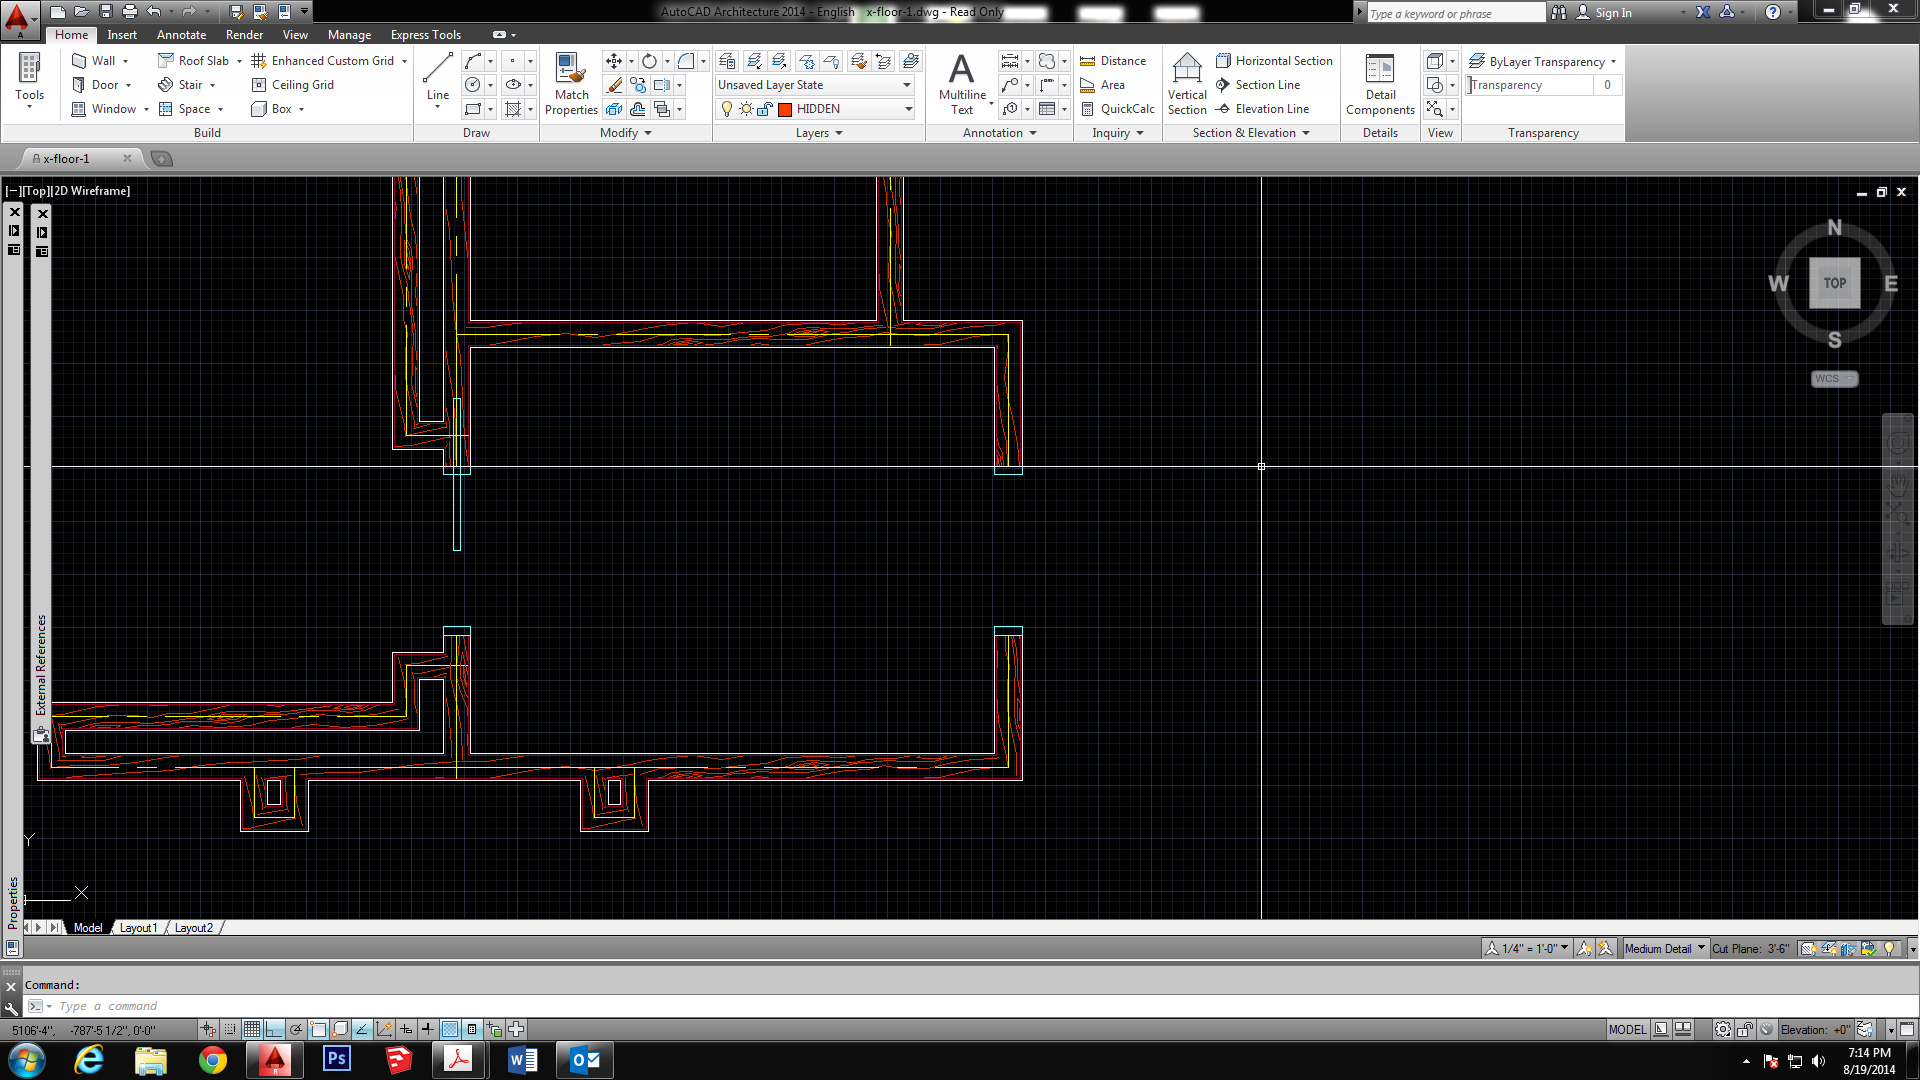 20+ Wood Hatch Pattern Autocad 2014 Pictures and Ideas on Meta Networks